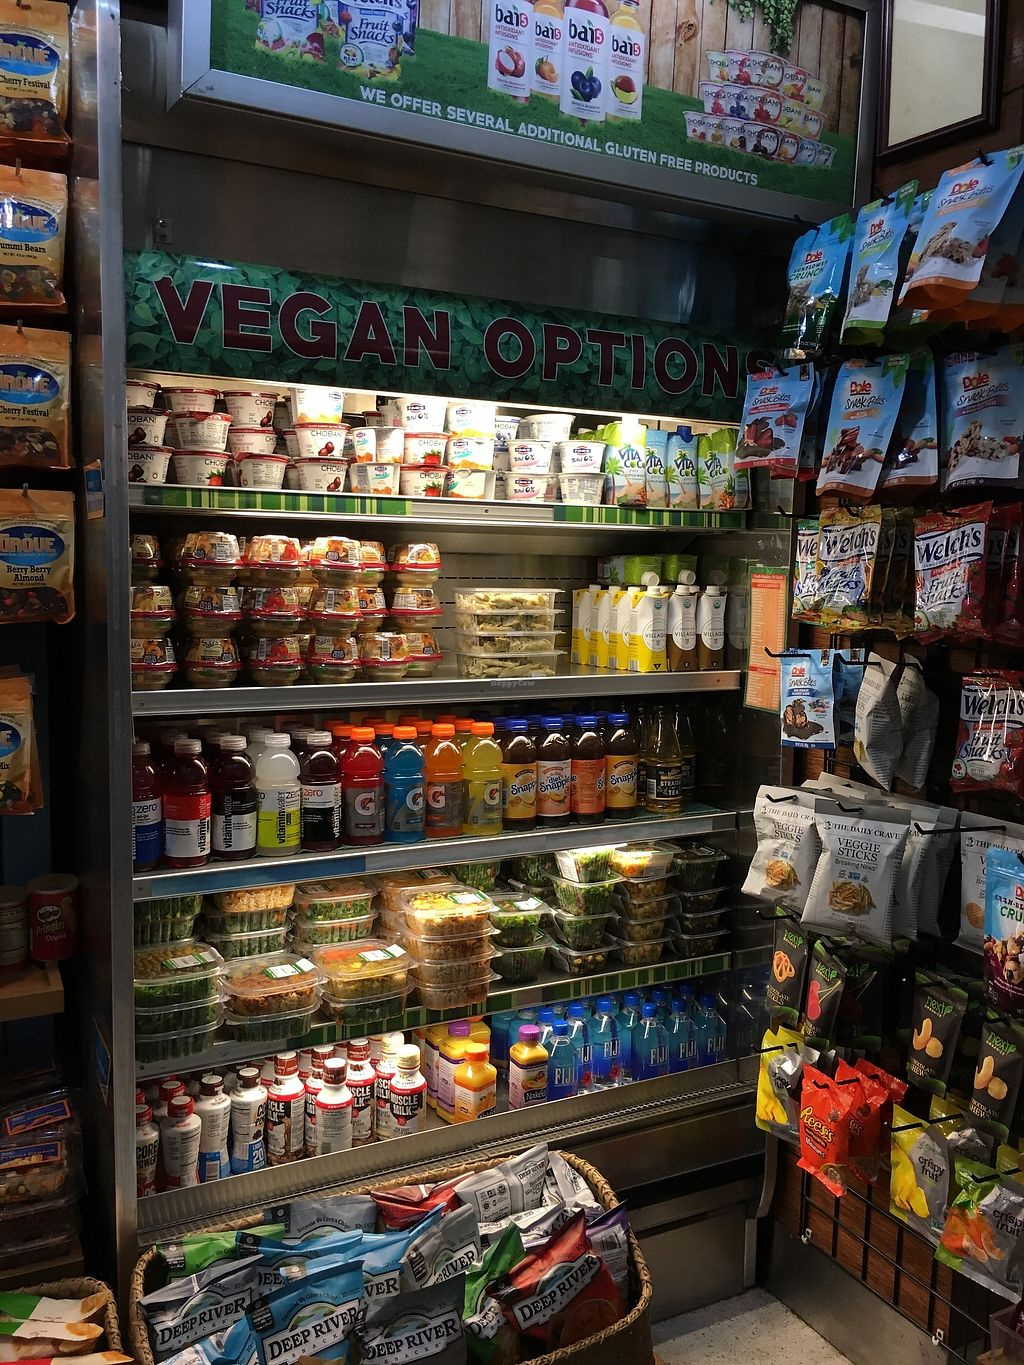 """Photo of Fresh Market on the Go - Airport  by <a href=""""/members/profile/kurt"""">kurt</a> <br/>Vegan Options <br/> November 15, 2017  - <a href='/contact/abuse/image/105152/325876'>Report</a>"""